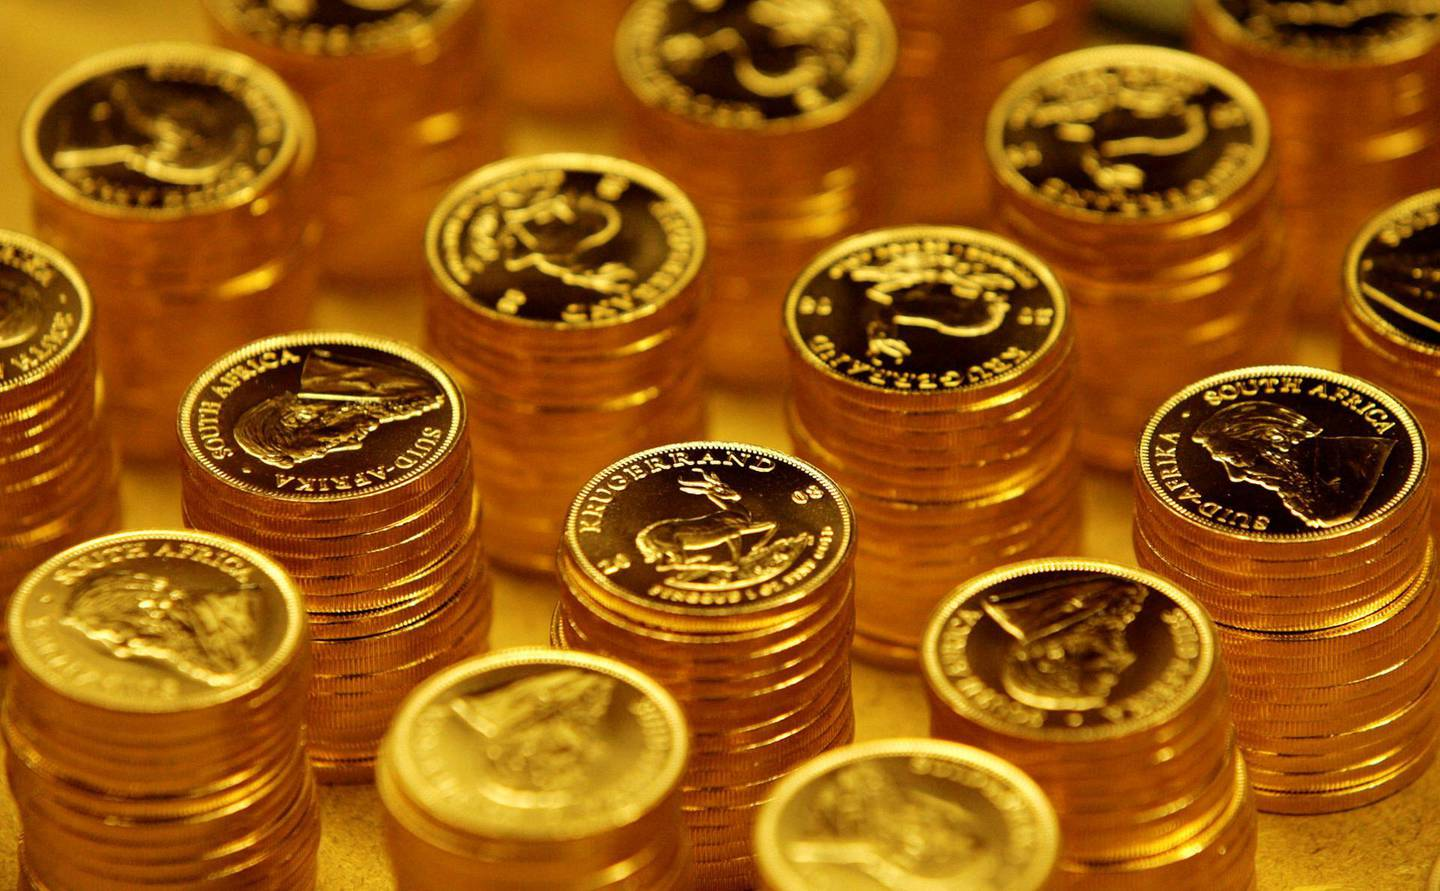 FILE PHOTO: Gold bullion coins known as Krugerrands are pictured in the mint where they are manufactured in Midrand outside Johannesburg October 3, 2008. REUTERS/Siphiwe Sibeko (SOUTH AFRICA)/File Photo